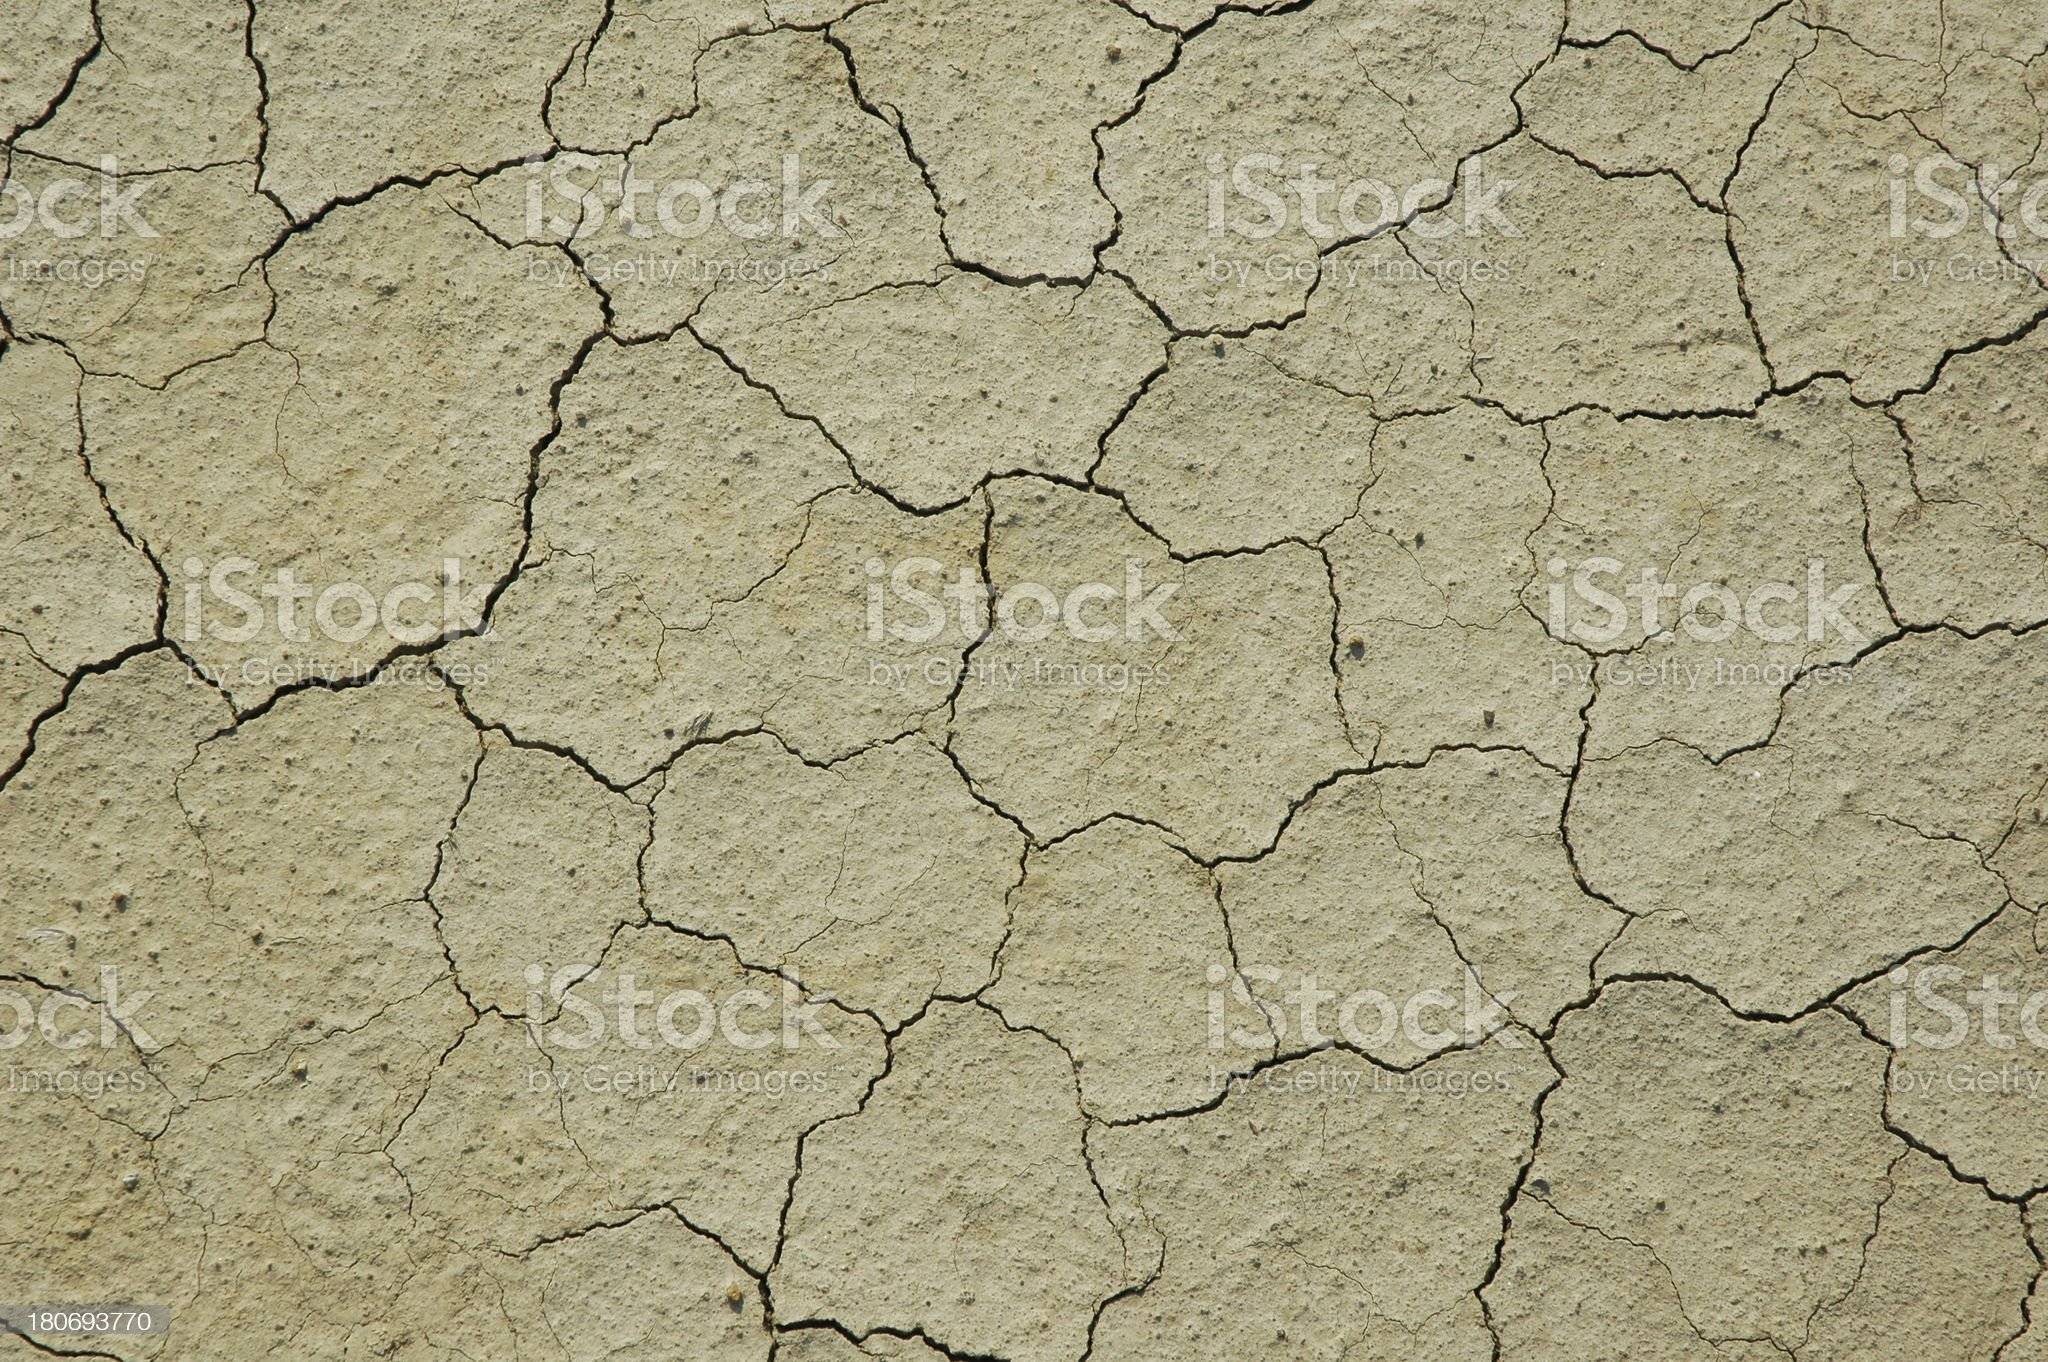 Parched Earth - Soil Conservation, Drought, Erosion royalty-free stock photo